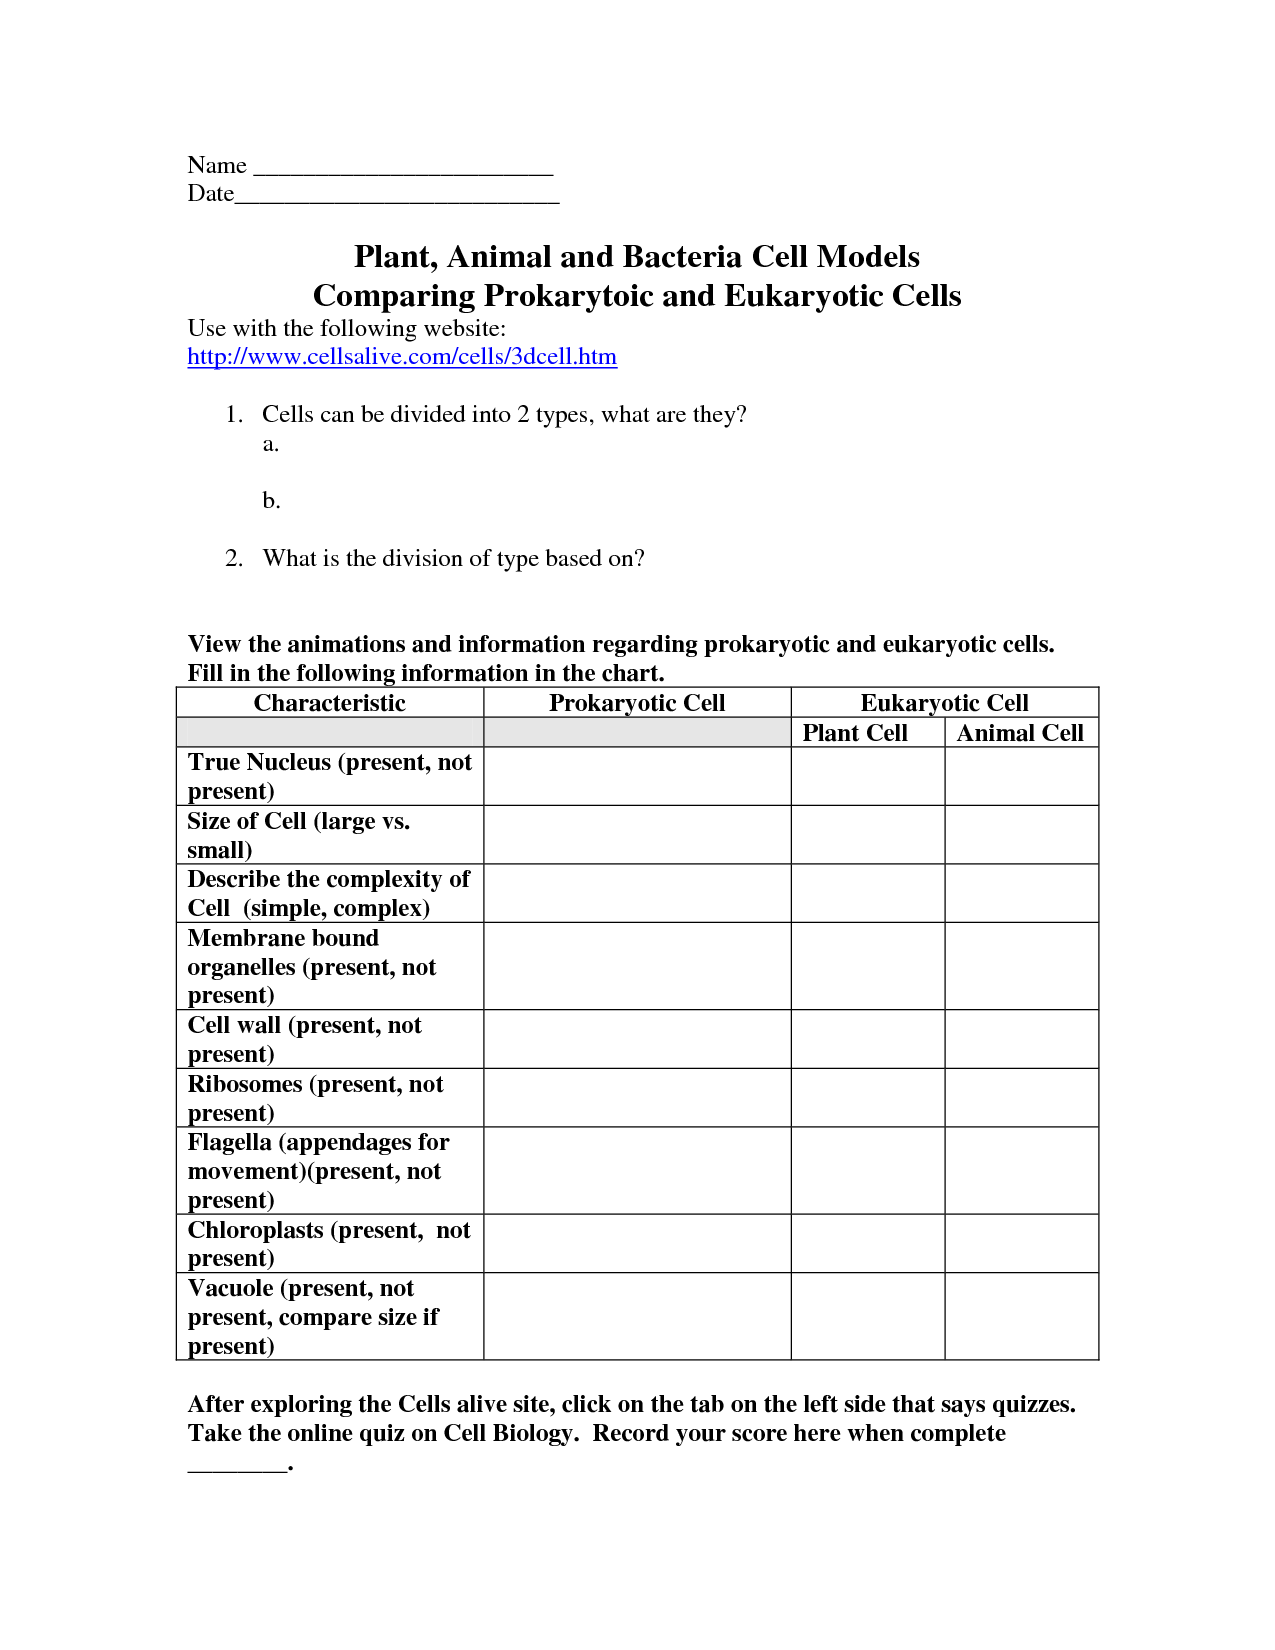 Cells Worksheets Anima And Bacterial Cell Comparing Prokaryotic And Eukaryotic Cells Cells Worksheet Eukaryotic Cell Prokaryotes